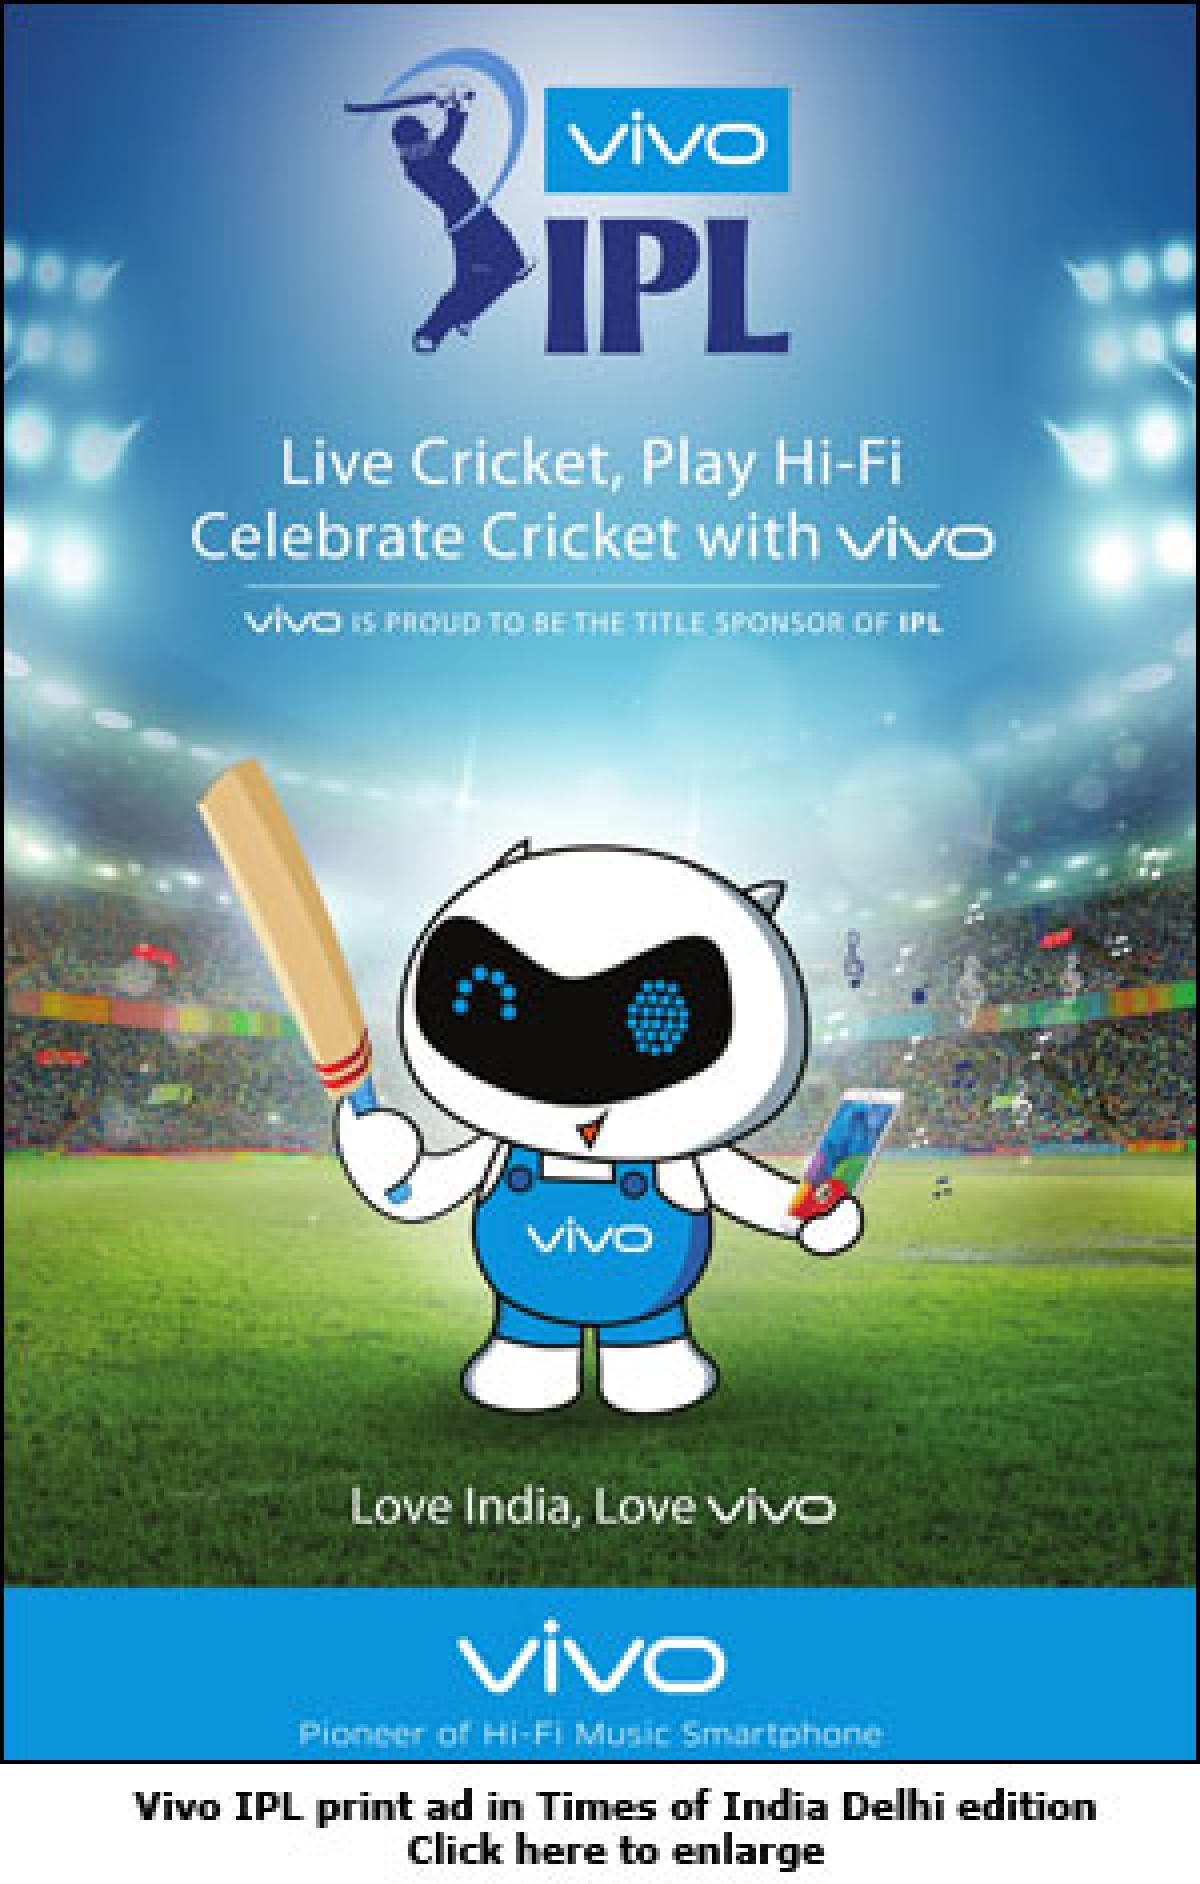 Know the new IPL sponsor Vivo